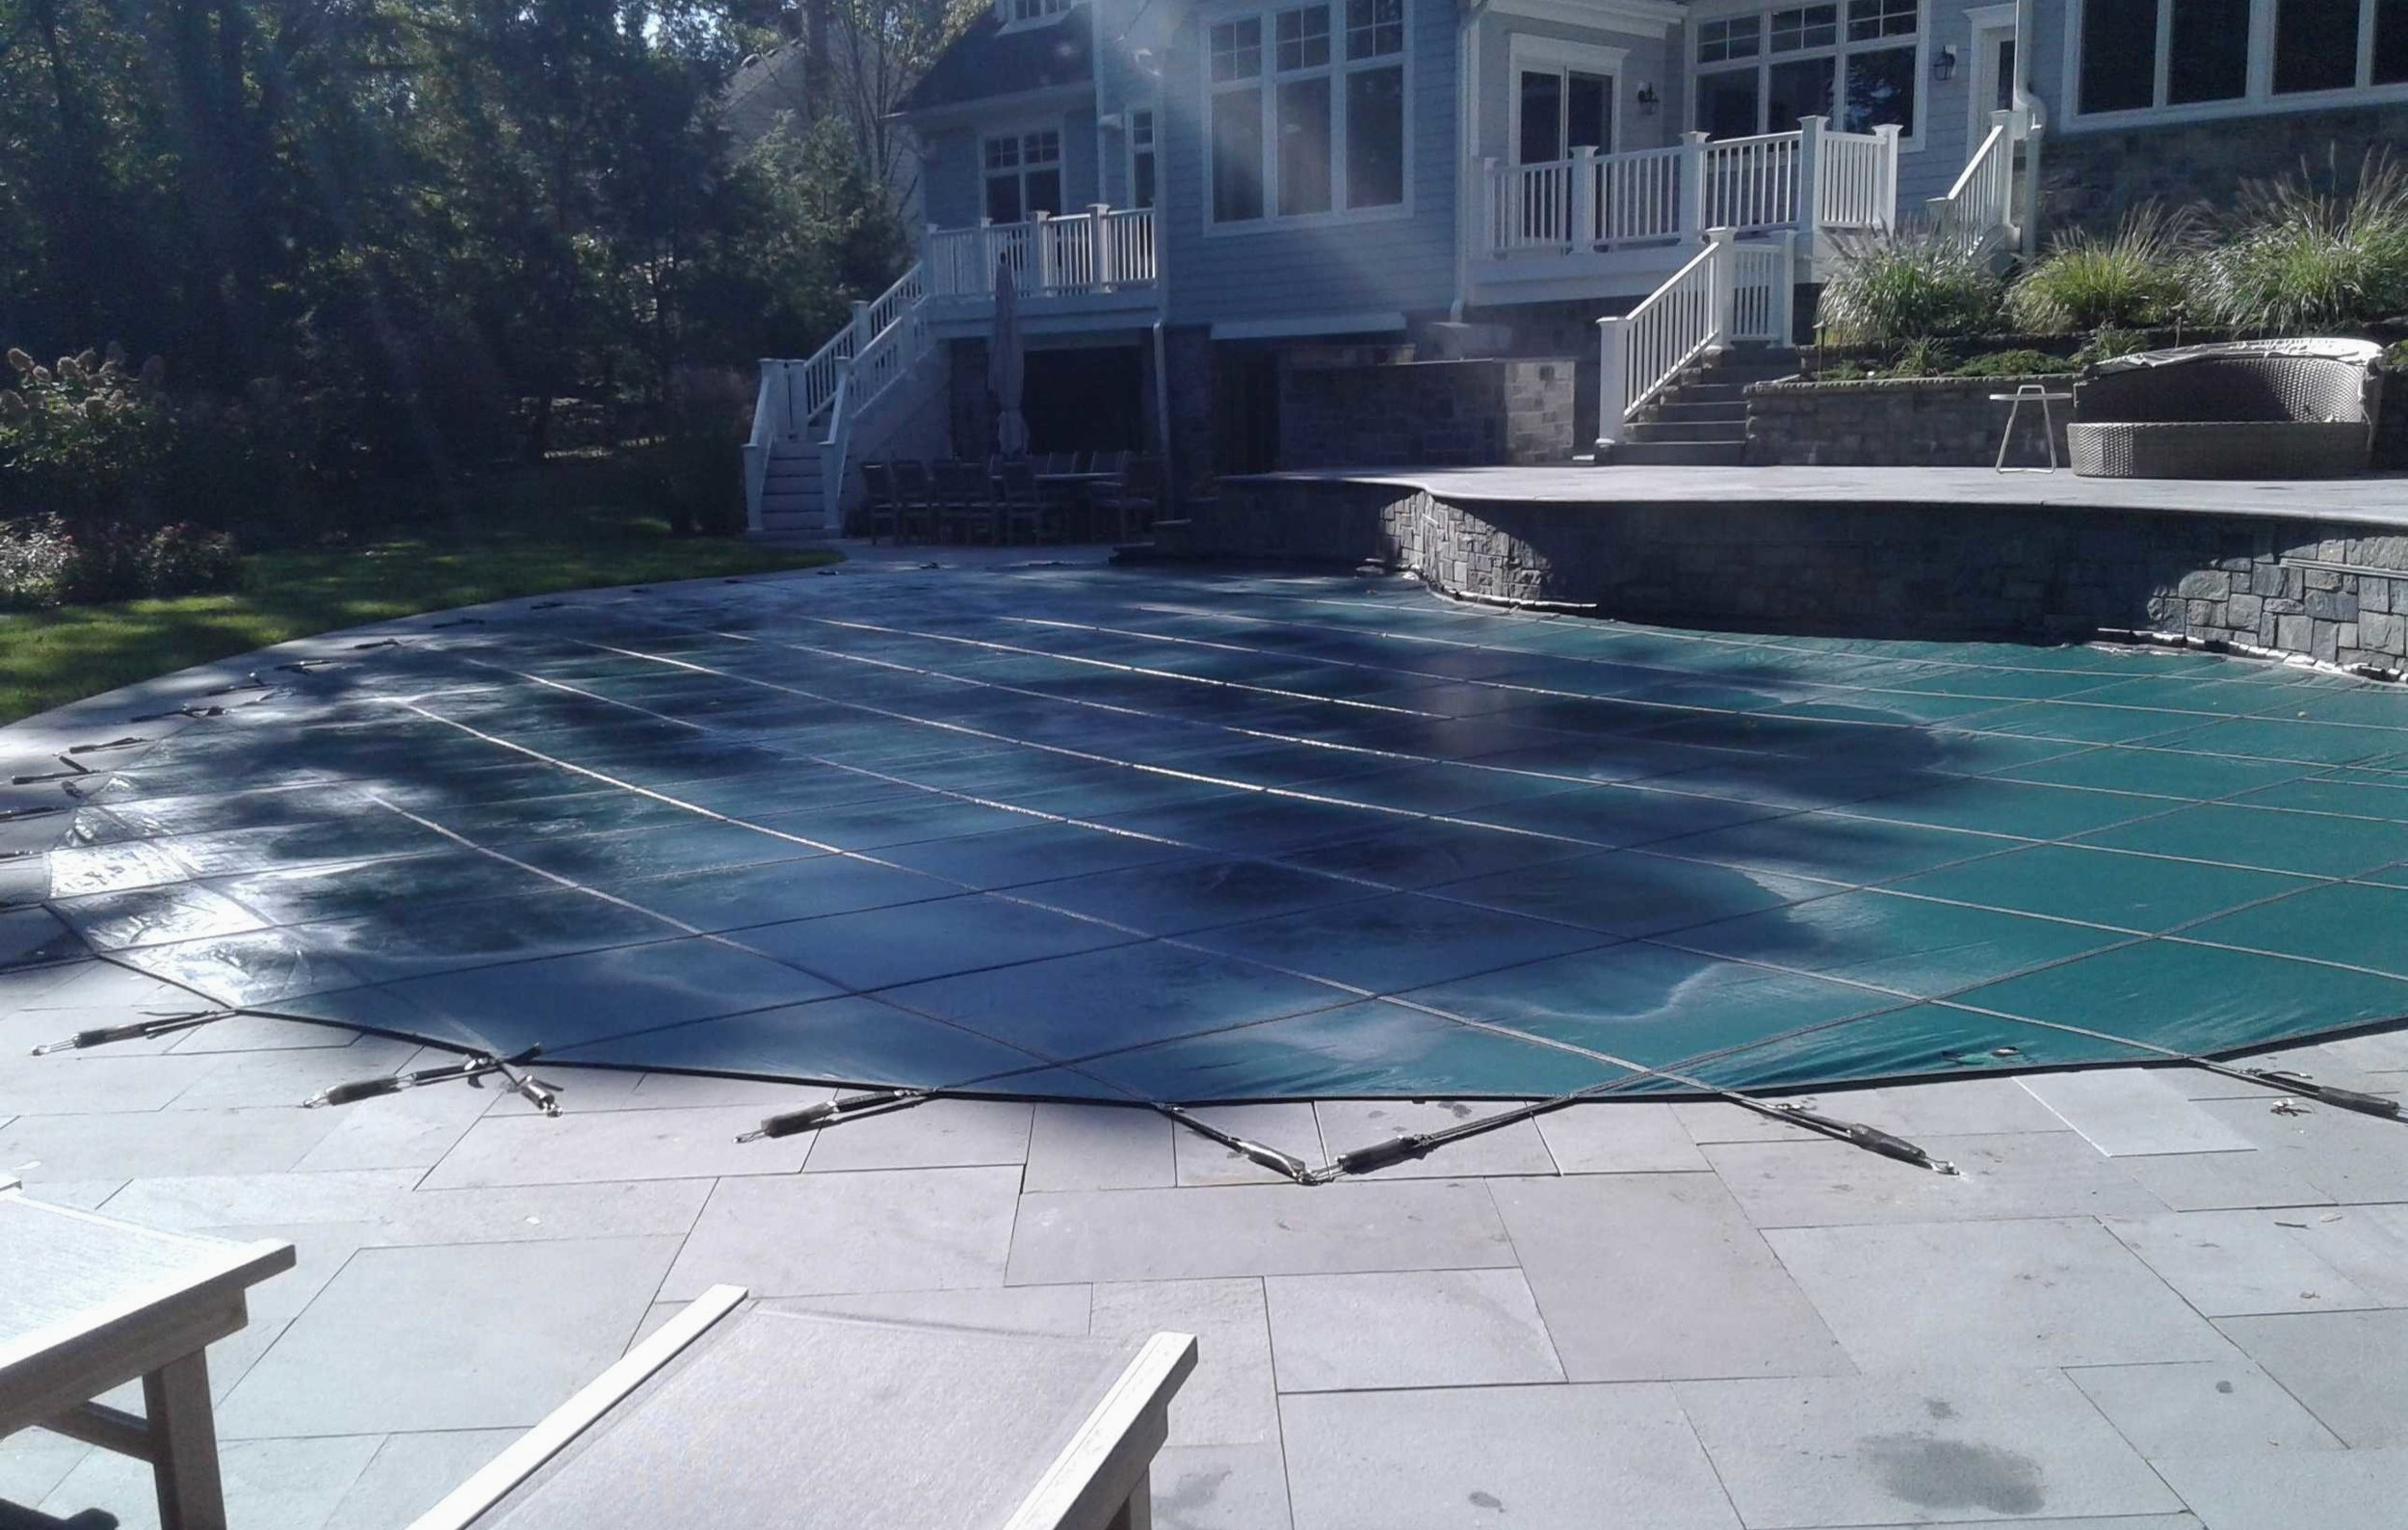 COVER REPLACEMENT - Northstar Pool Co. offers new cover measuring, installation and existing cover repairs. Contact us today, were happy to answer your questions!